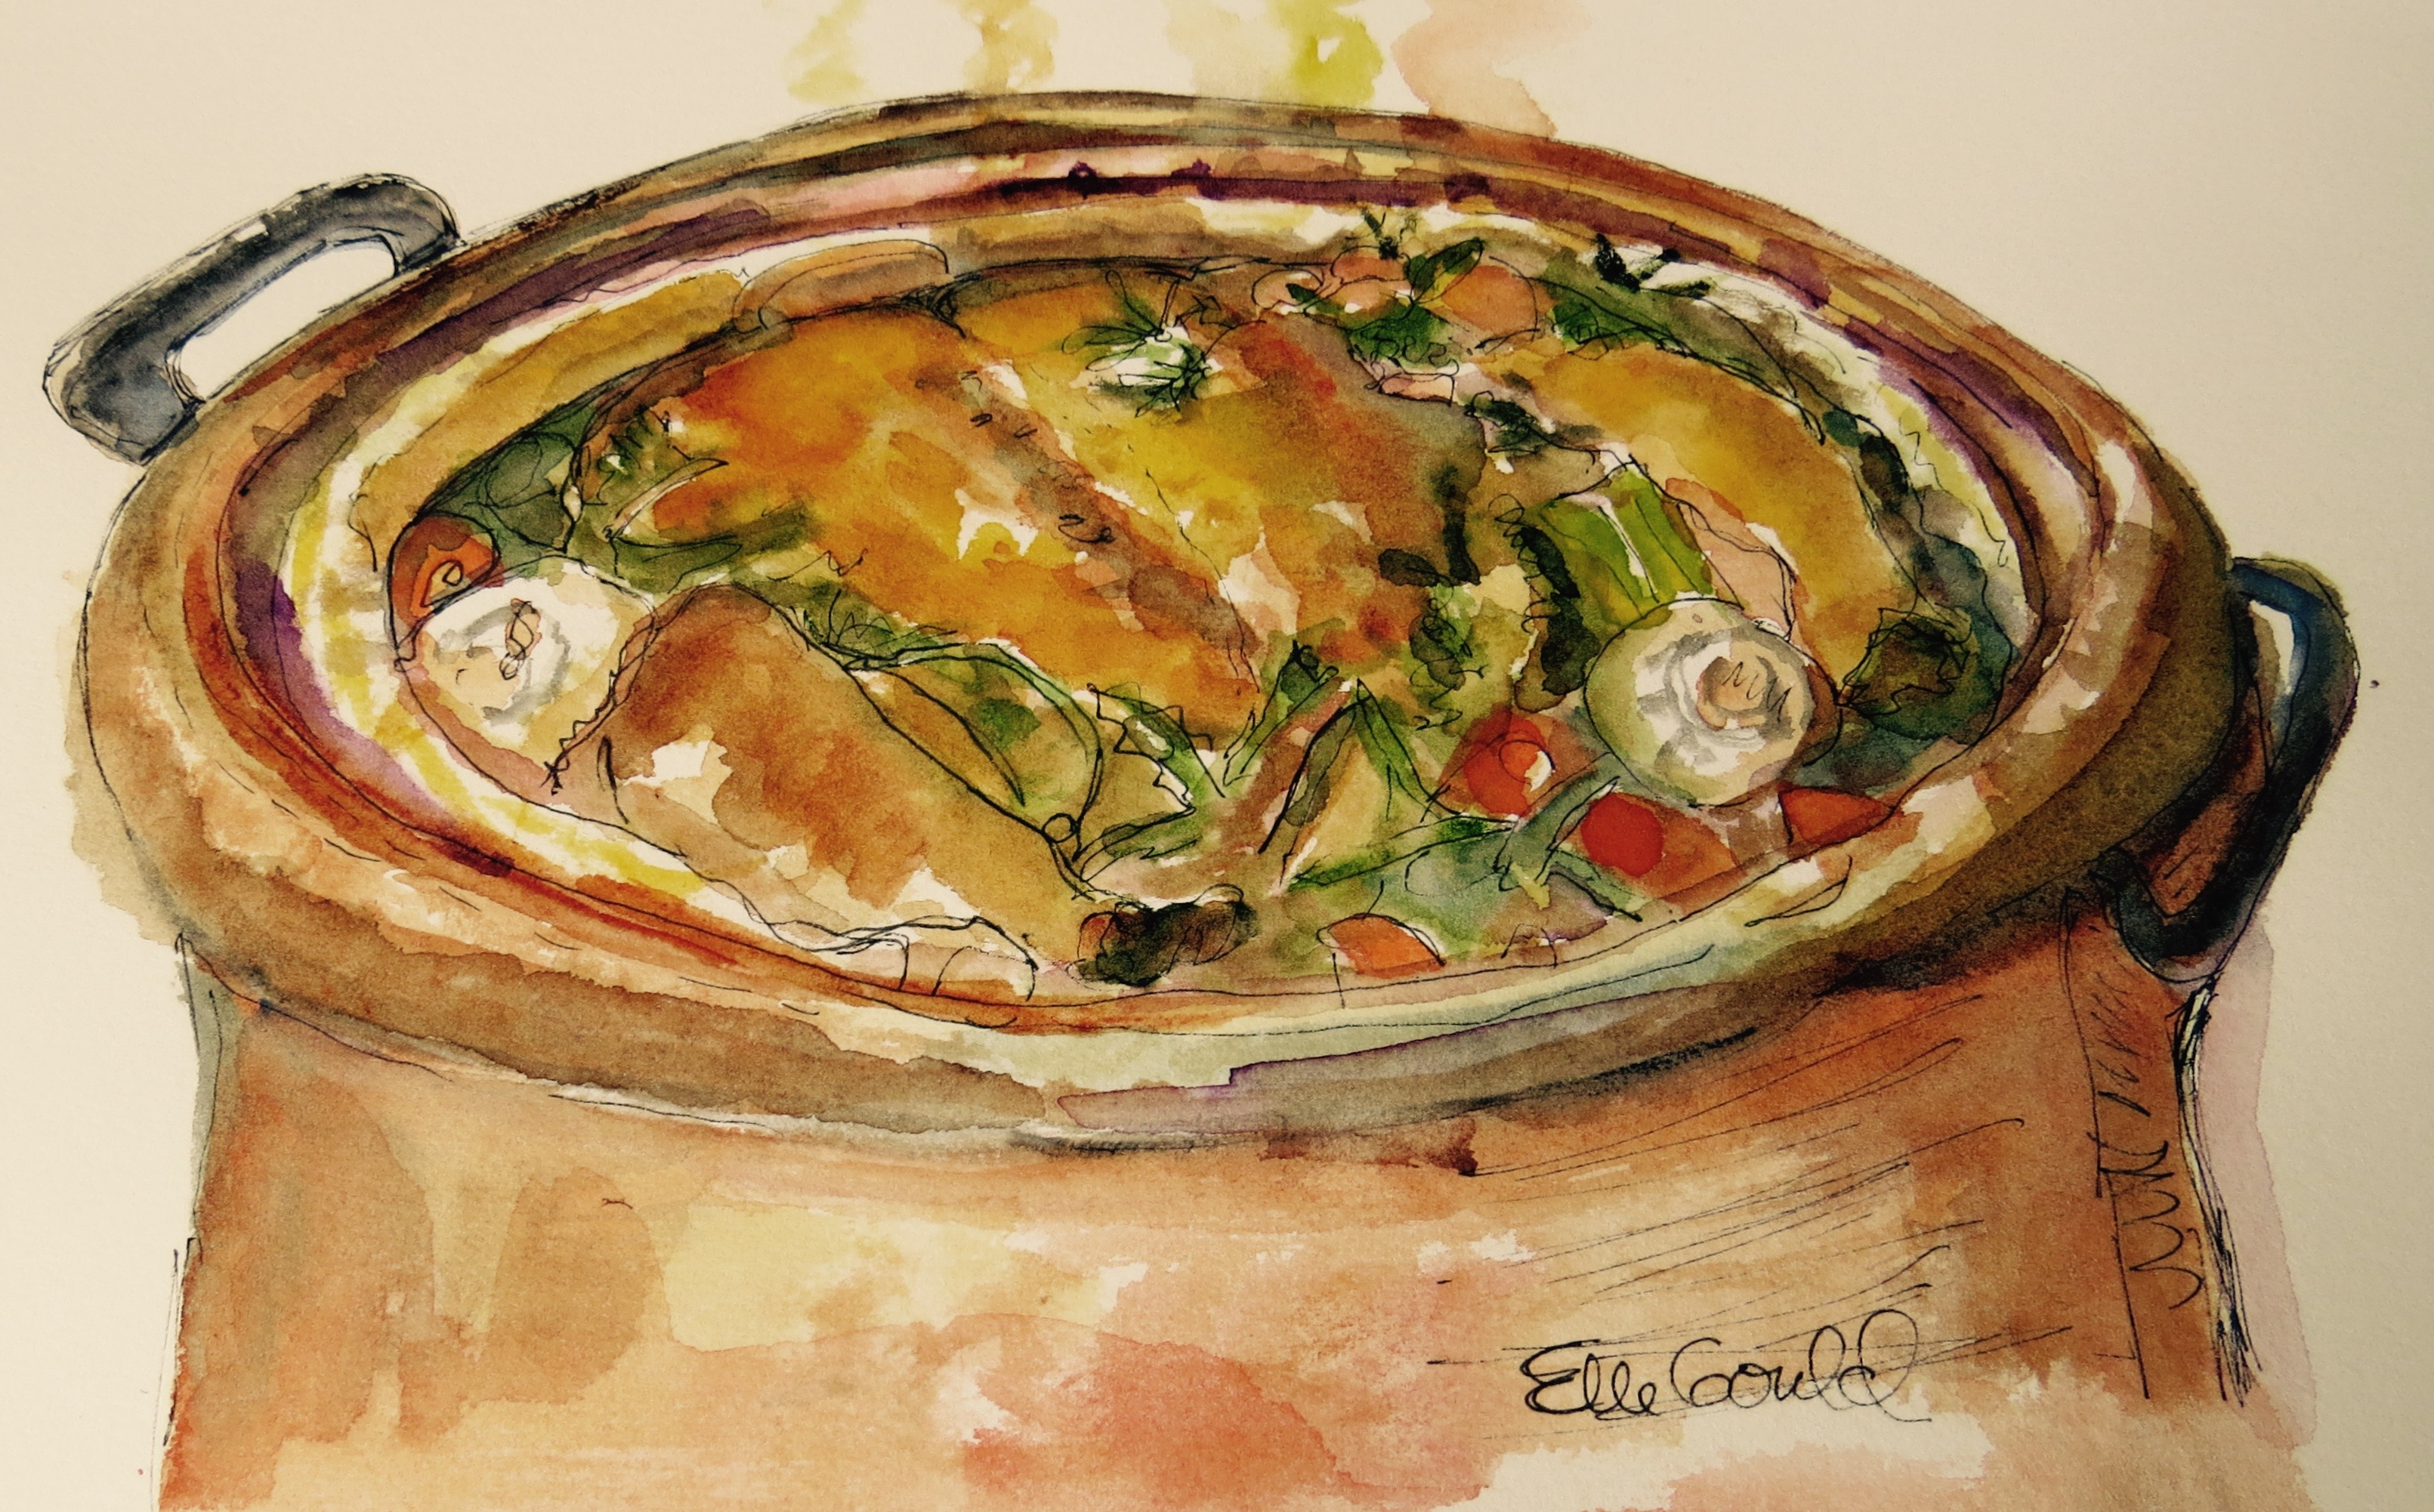 Chicken In A Pot is the  cookbook cover of Around My French Table by Dorie Greenspan. Watercolor by Ellie Gould.